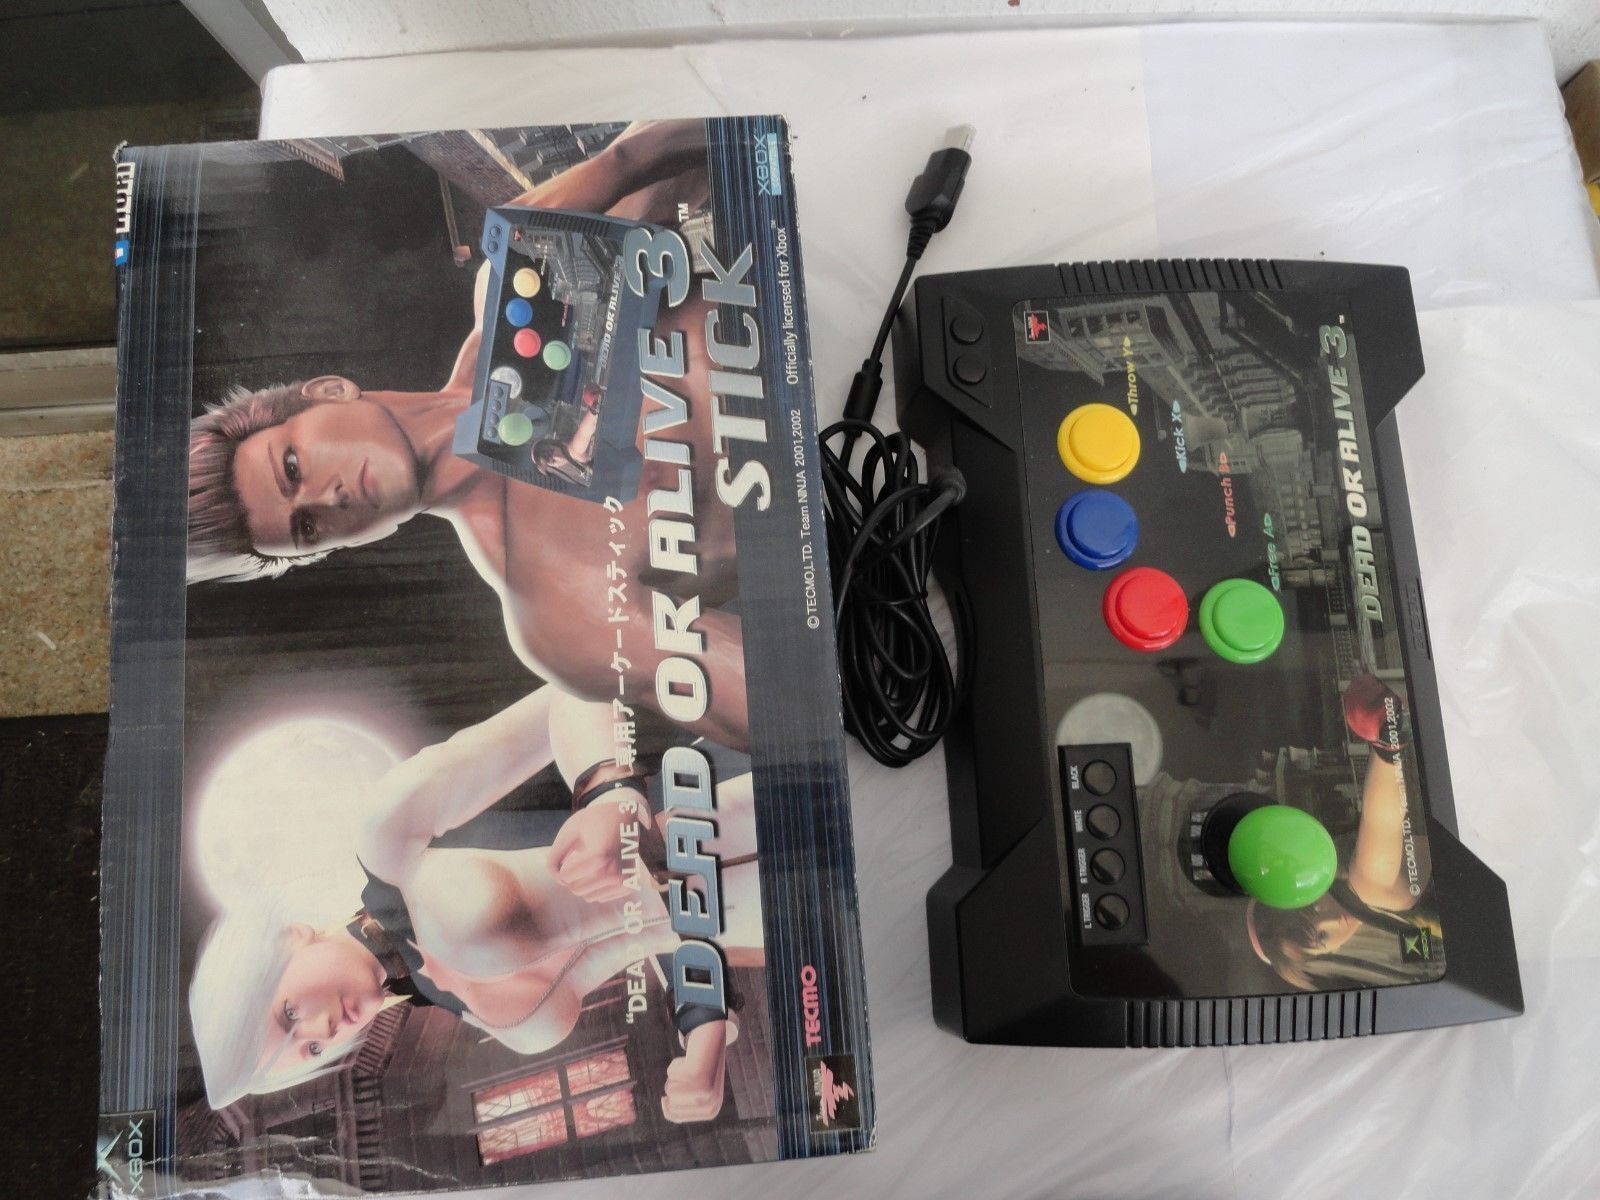 Xbox Hori Dead Or Alive 3 Stick Rare Joystick Controller Japan Ebay 2002 L300 Radio Wiring Color Stock Photo